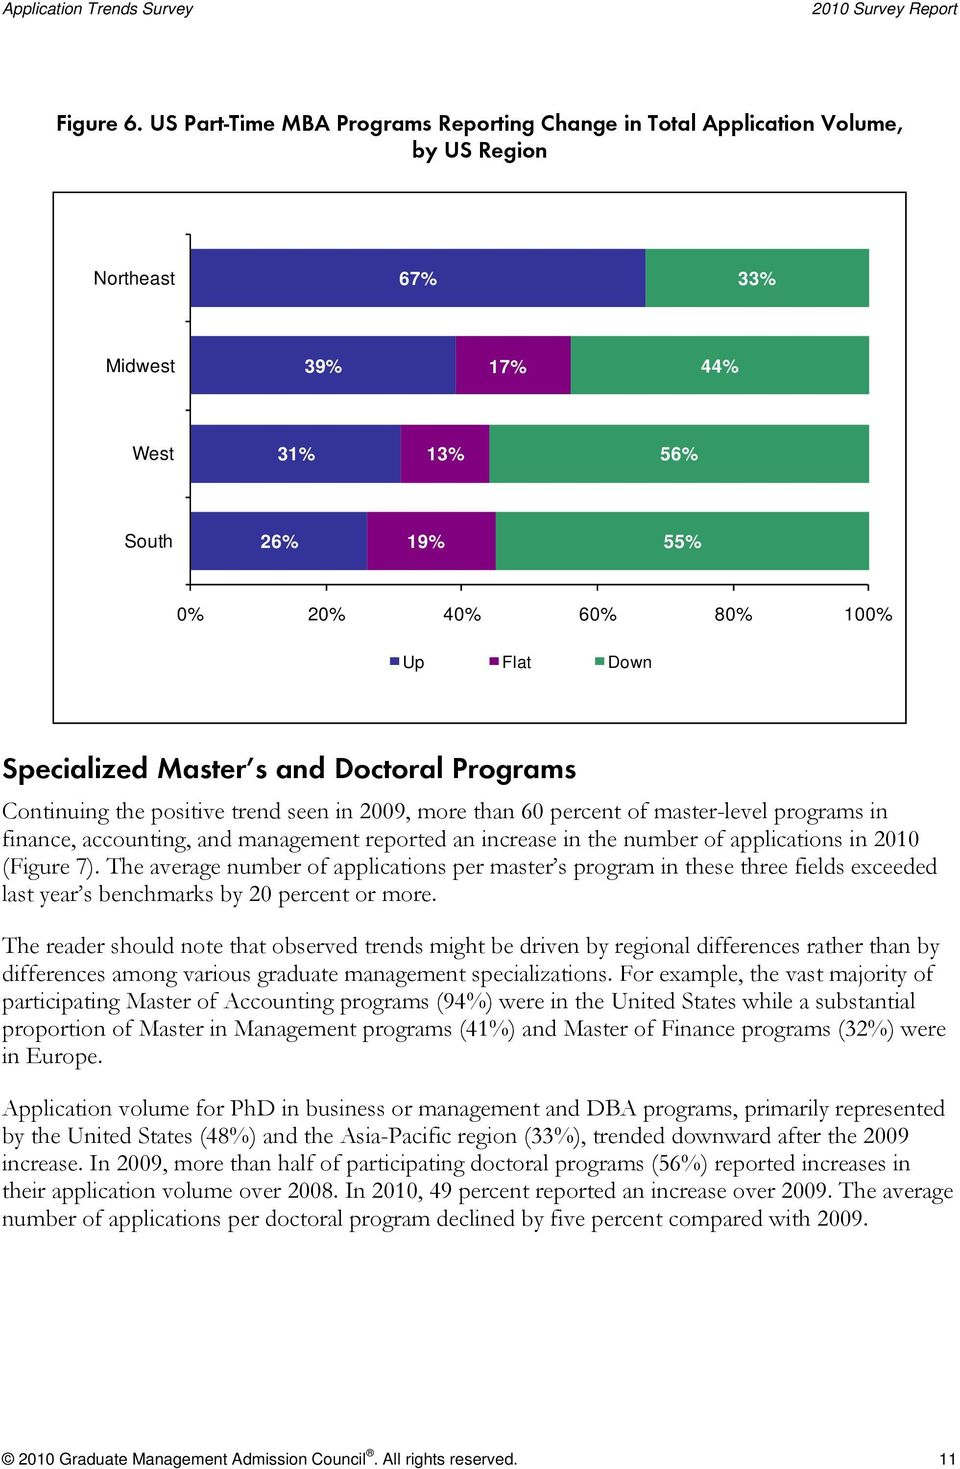 Specialized Master s and Doctoral Programs Continuing the positive trend seen in 2009, more than 60 percent of master-level programs in finance, accounting, and management reported an increase in the